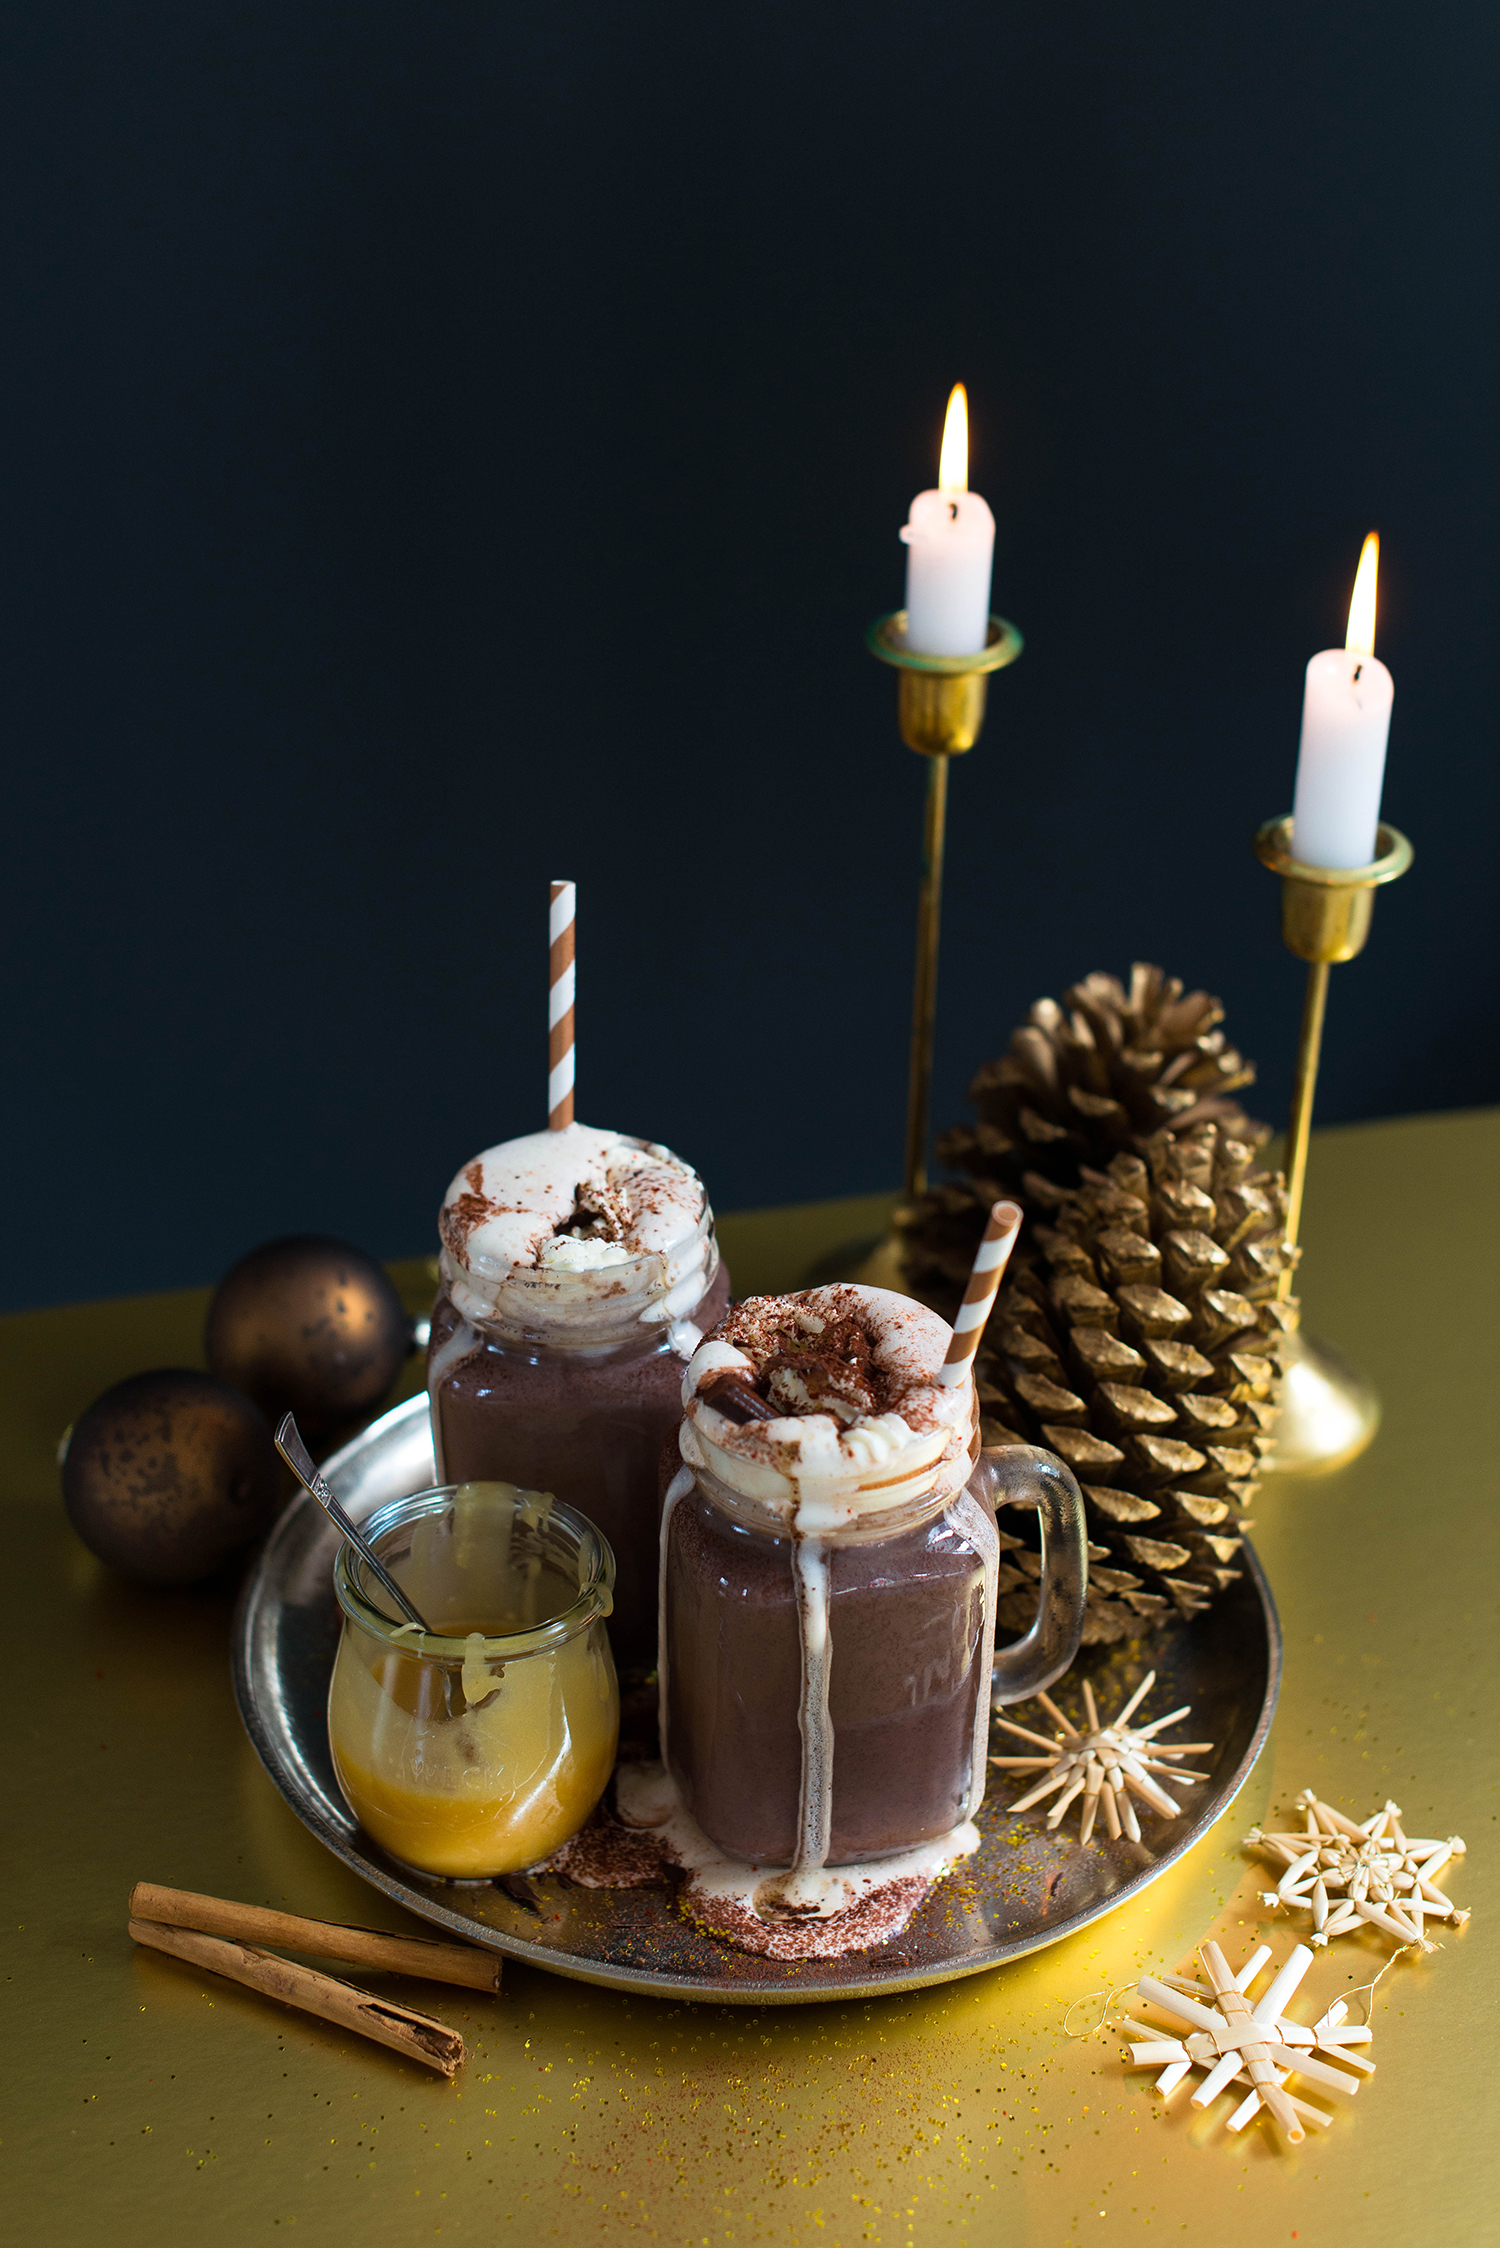 Spiced-hot-chocolate-salted-caramel-sauce-1